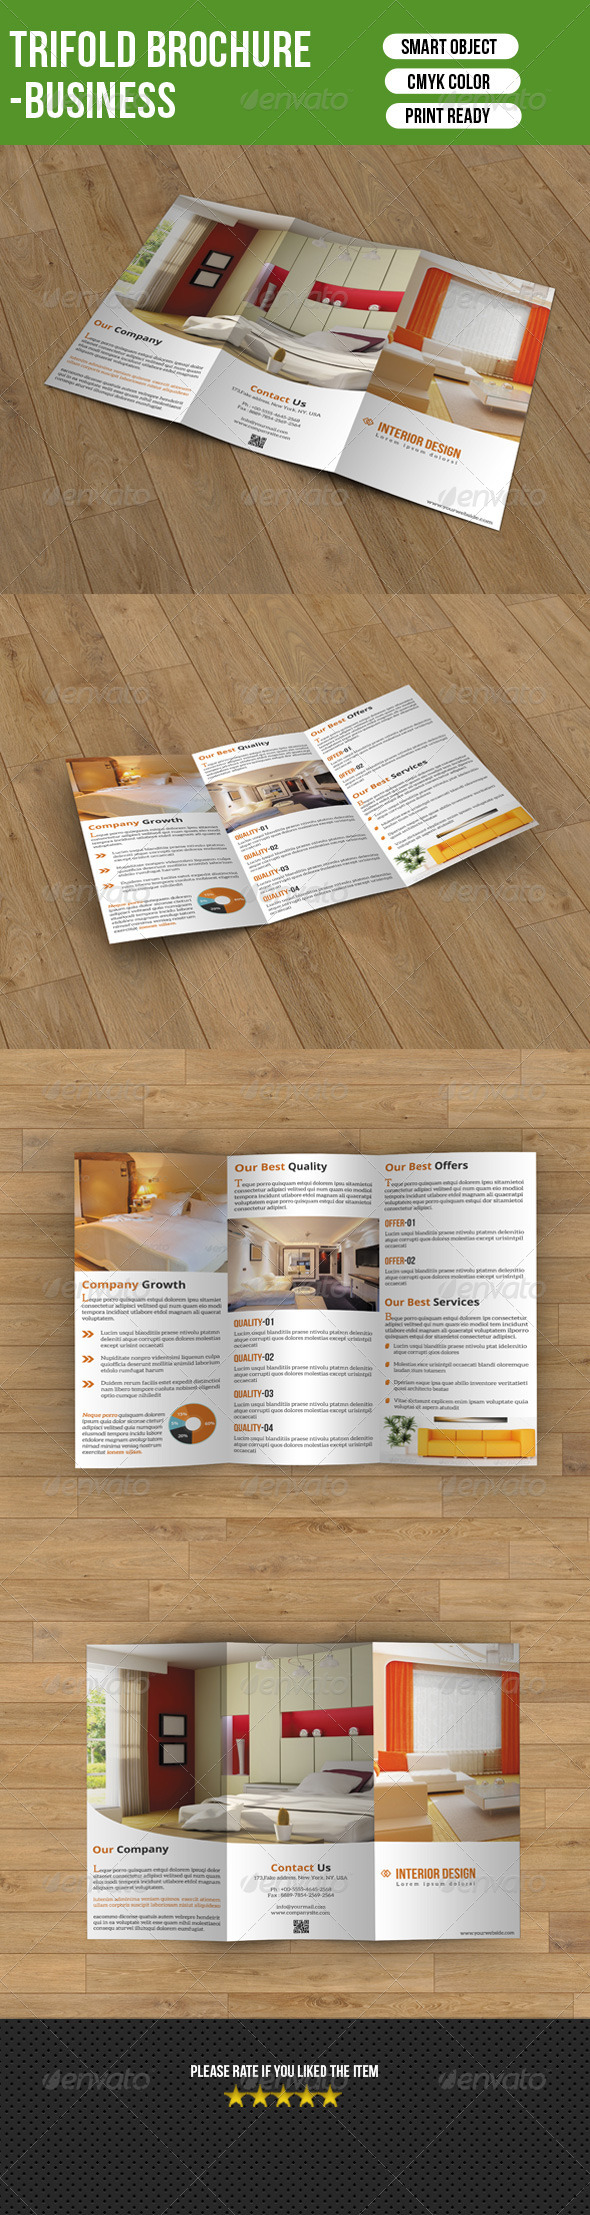 GraphicRiver Trifold Brochure-Interior Design 7655663